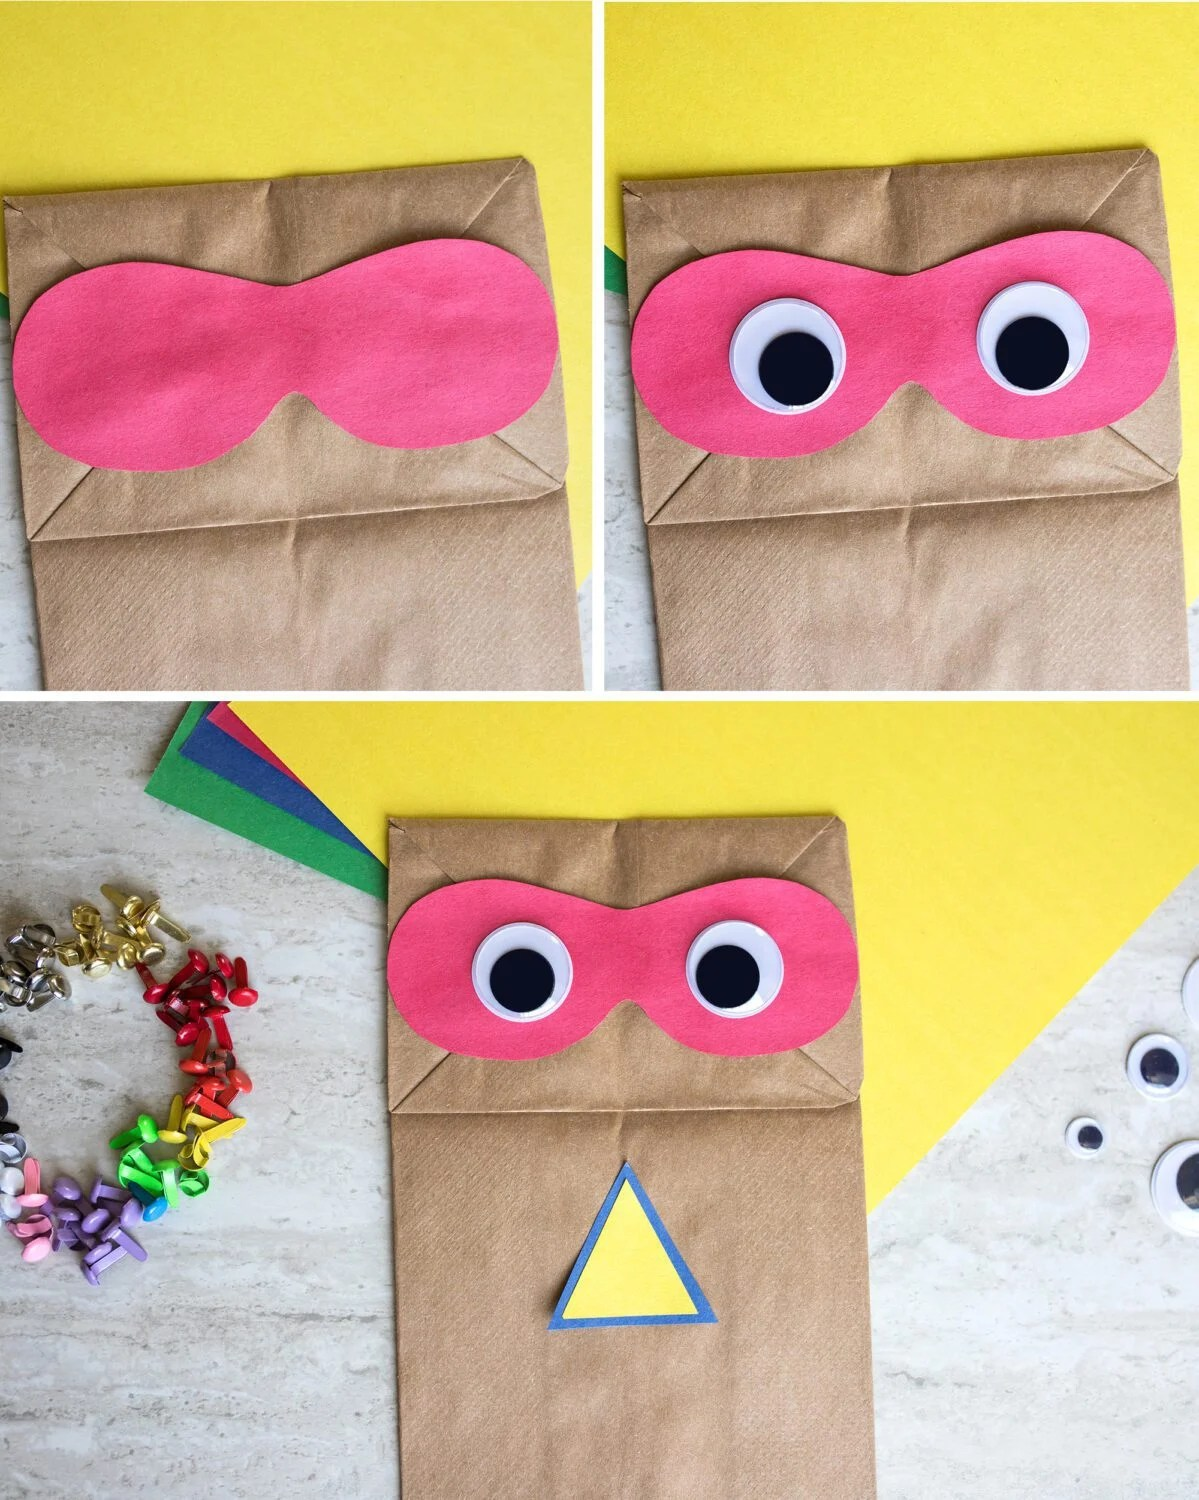 first few steps of the superhero paper bag craft